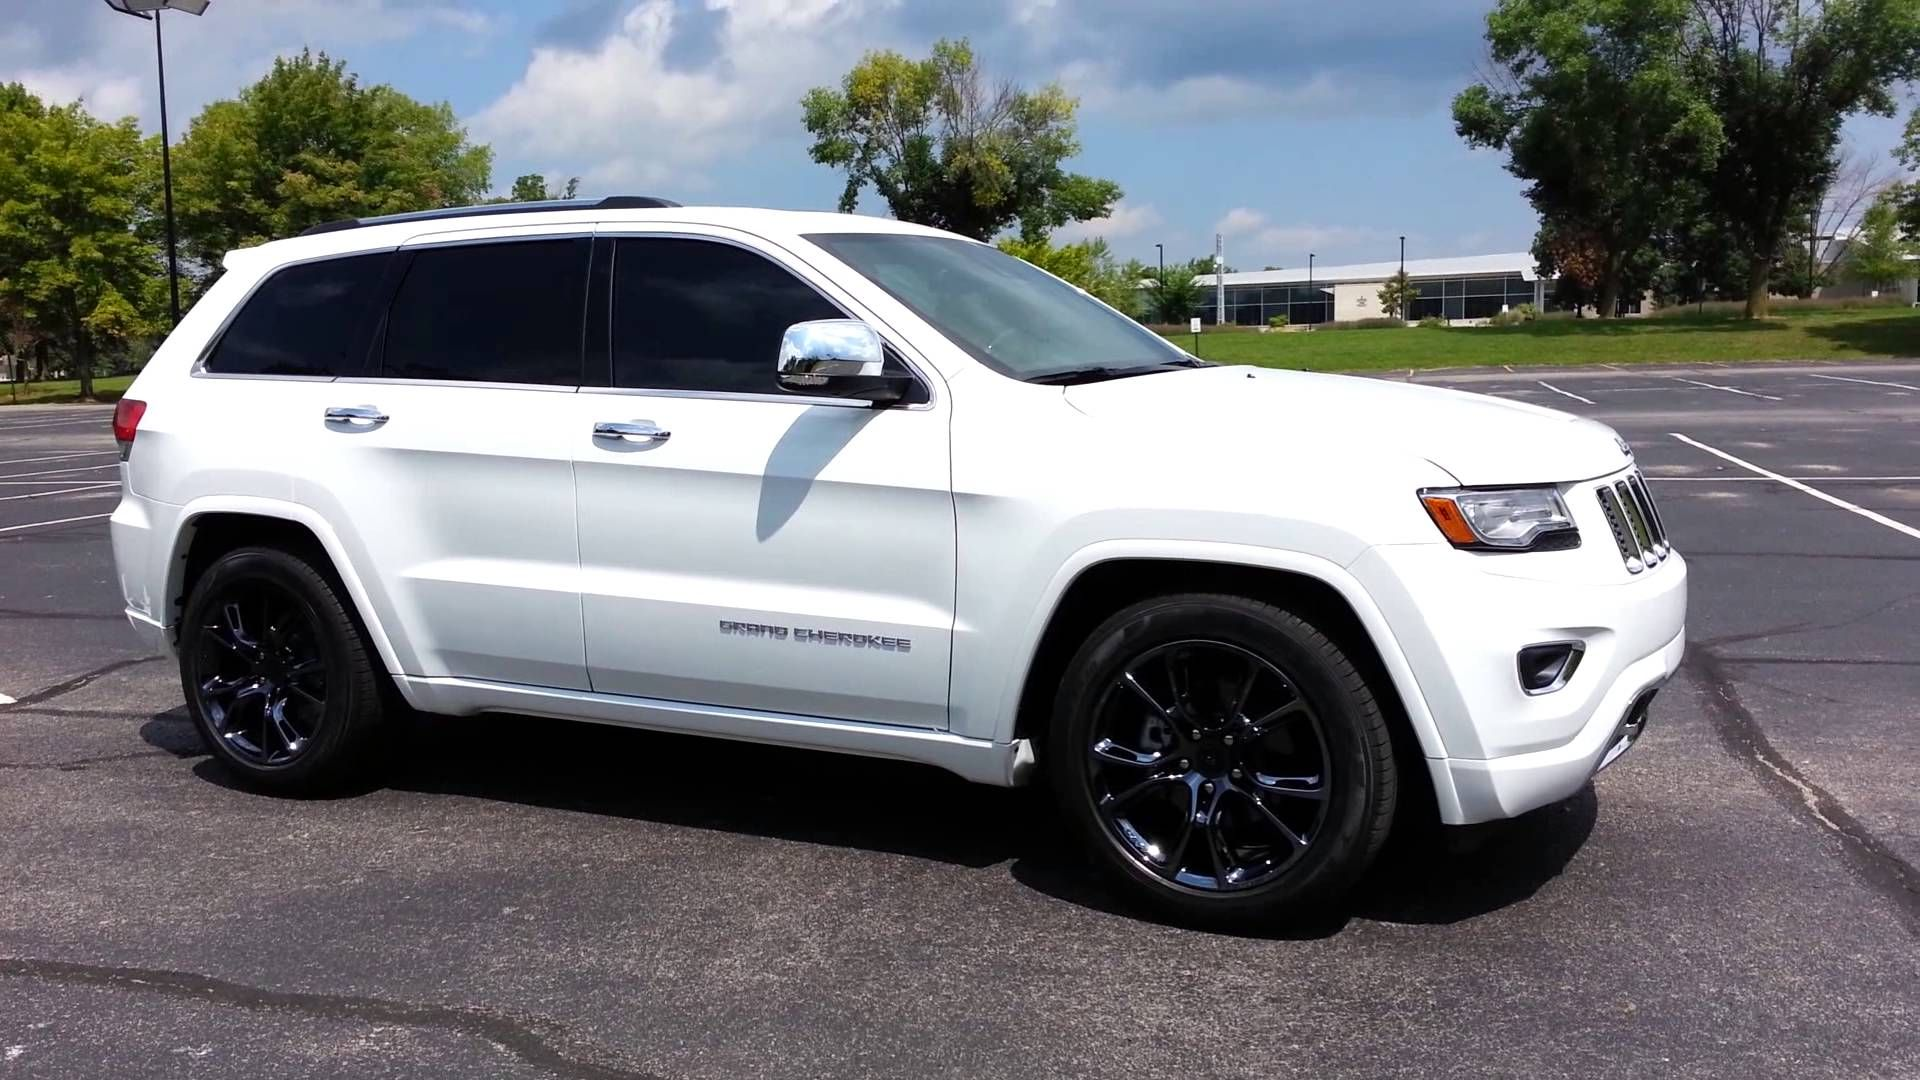 jeep grand cherokee black wheels google search jeep. Black Bedroom Furniture Sets. Home Design Ideas